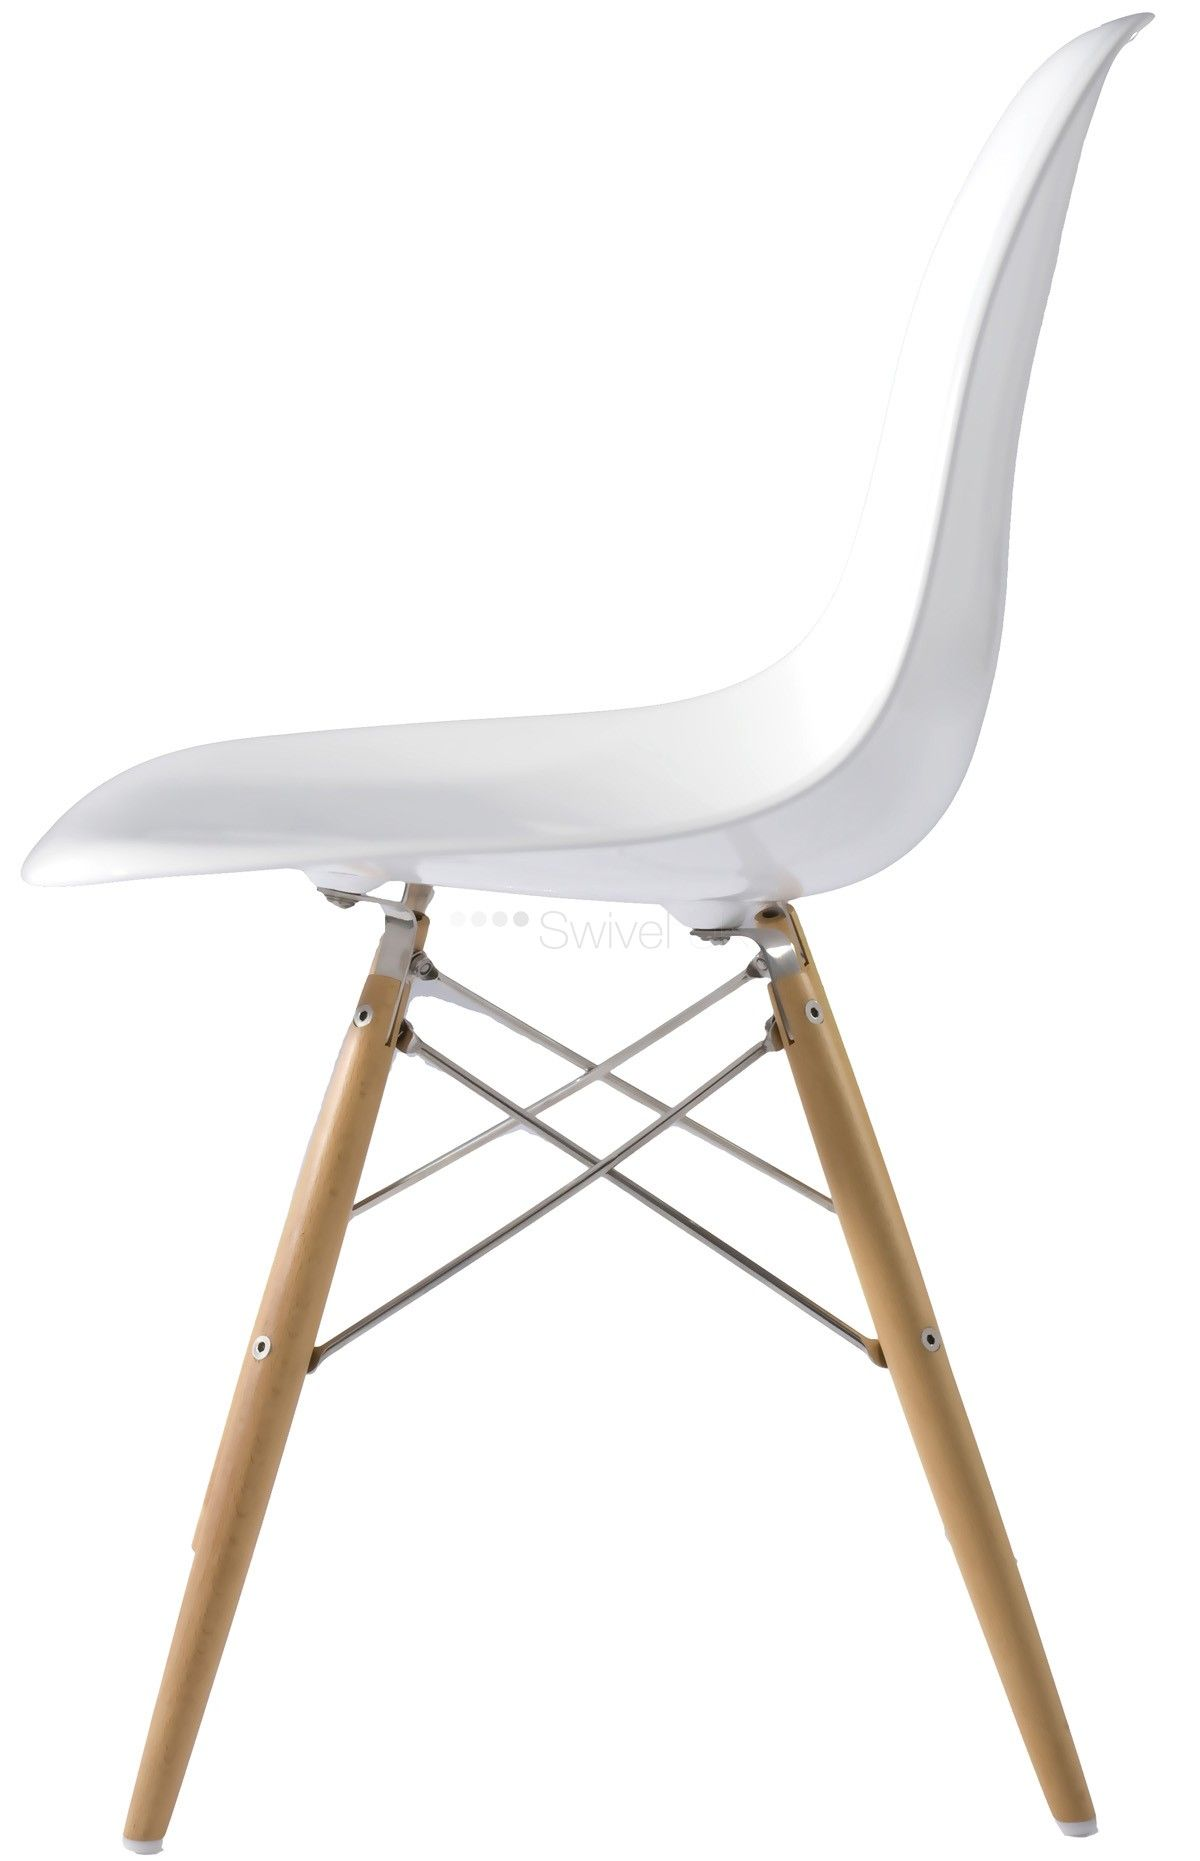 Eames Stil Stuhl   Stühle   Pinterest   Charles eames and Dining chairs